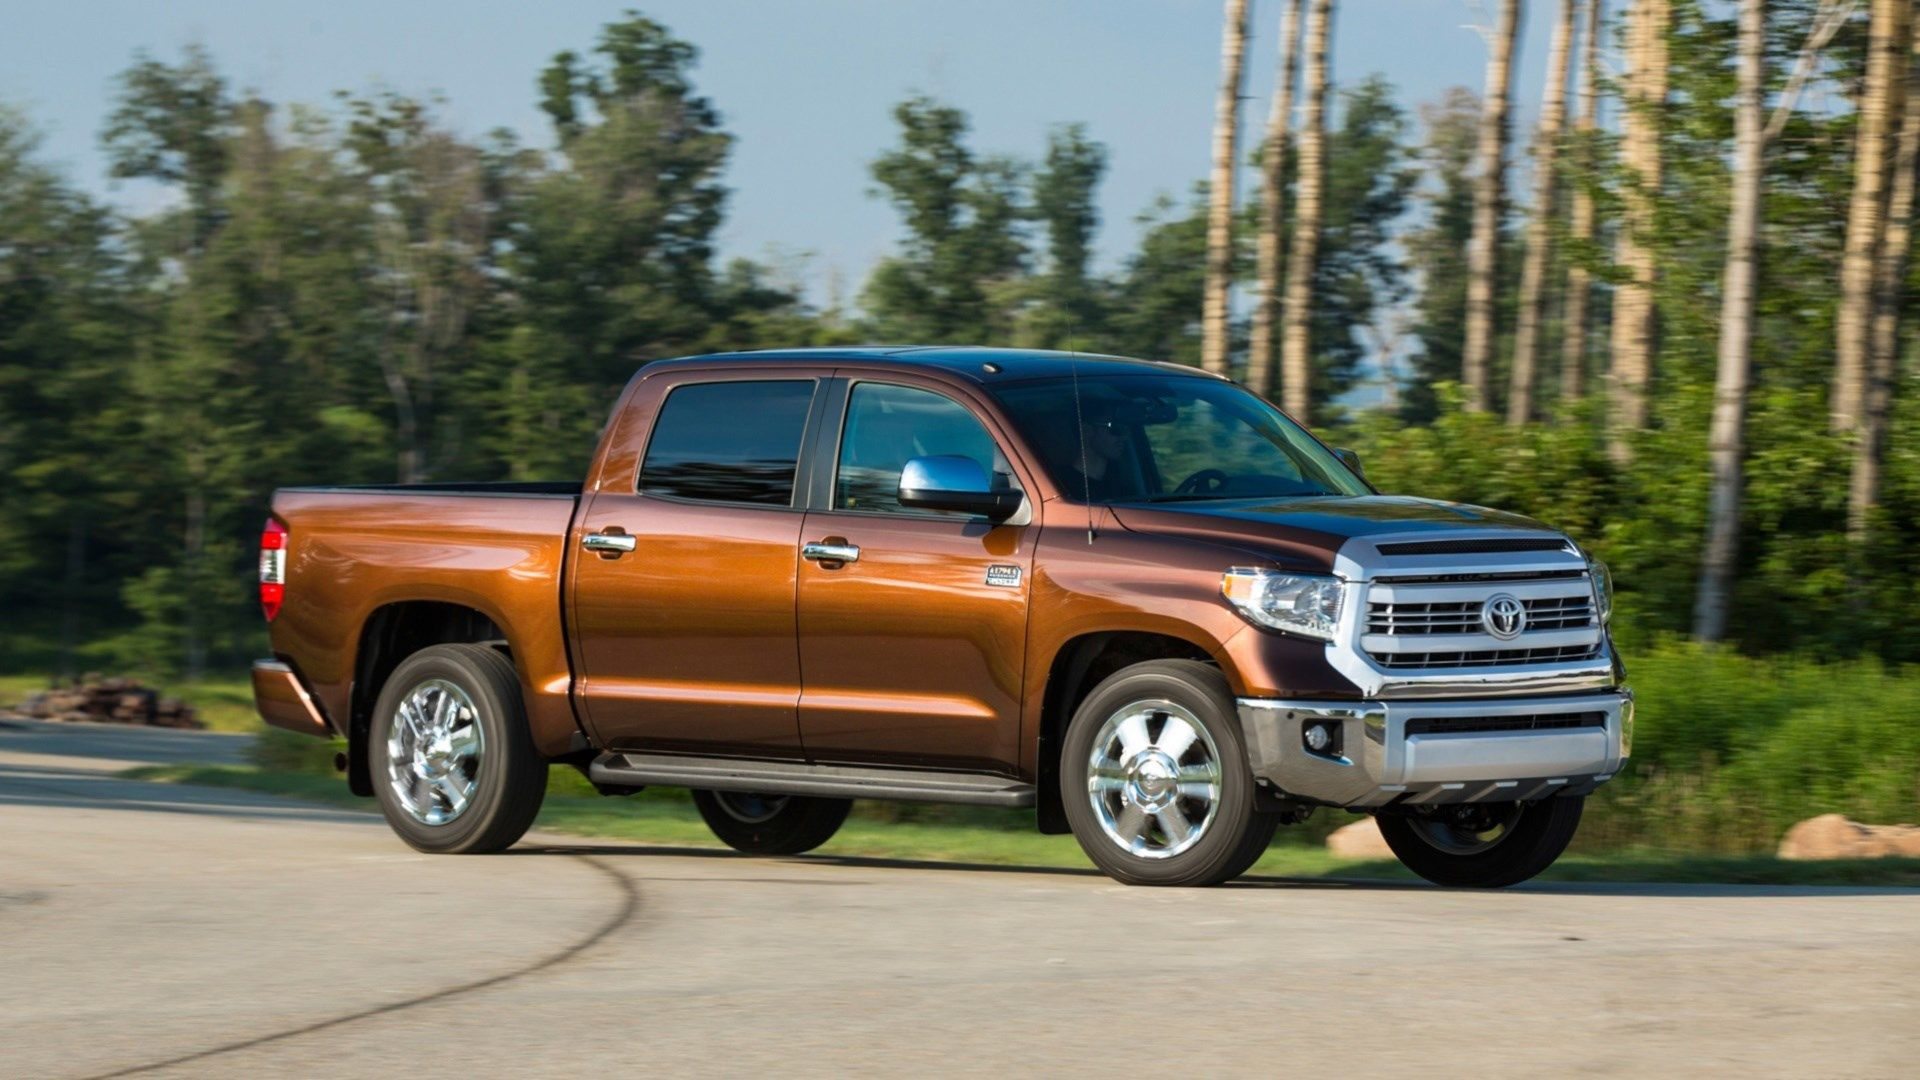 toyota tundra backgrounds for widescreen Stowe Fletcher